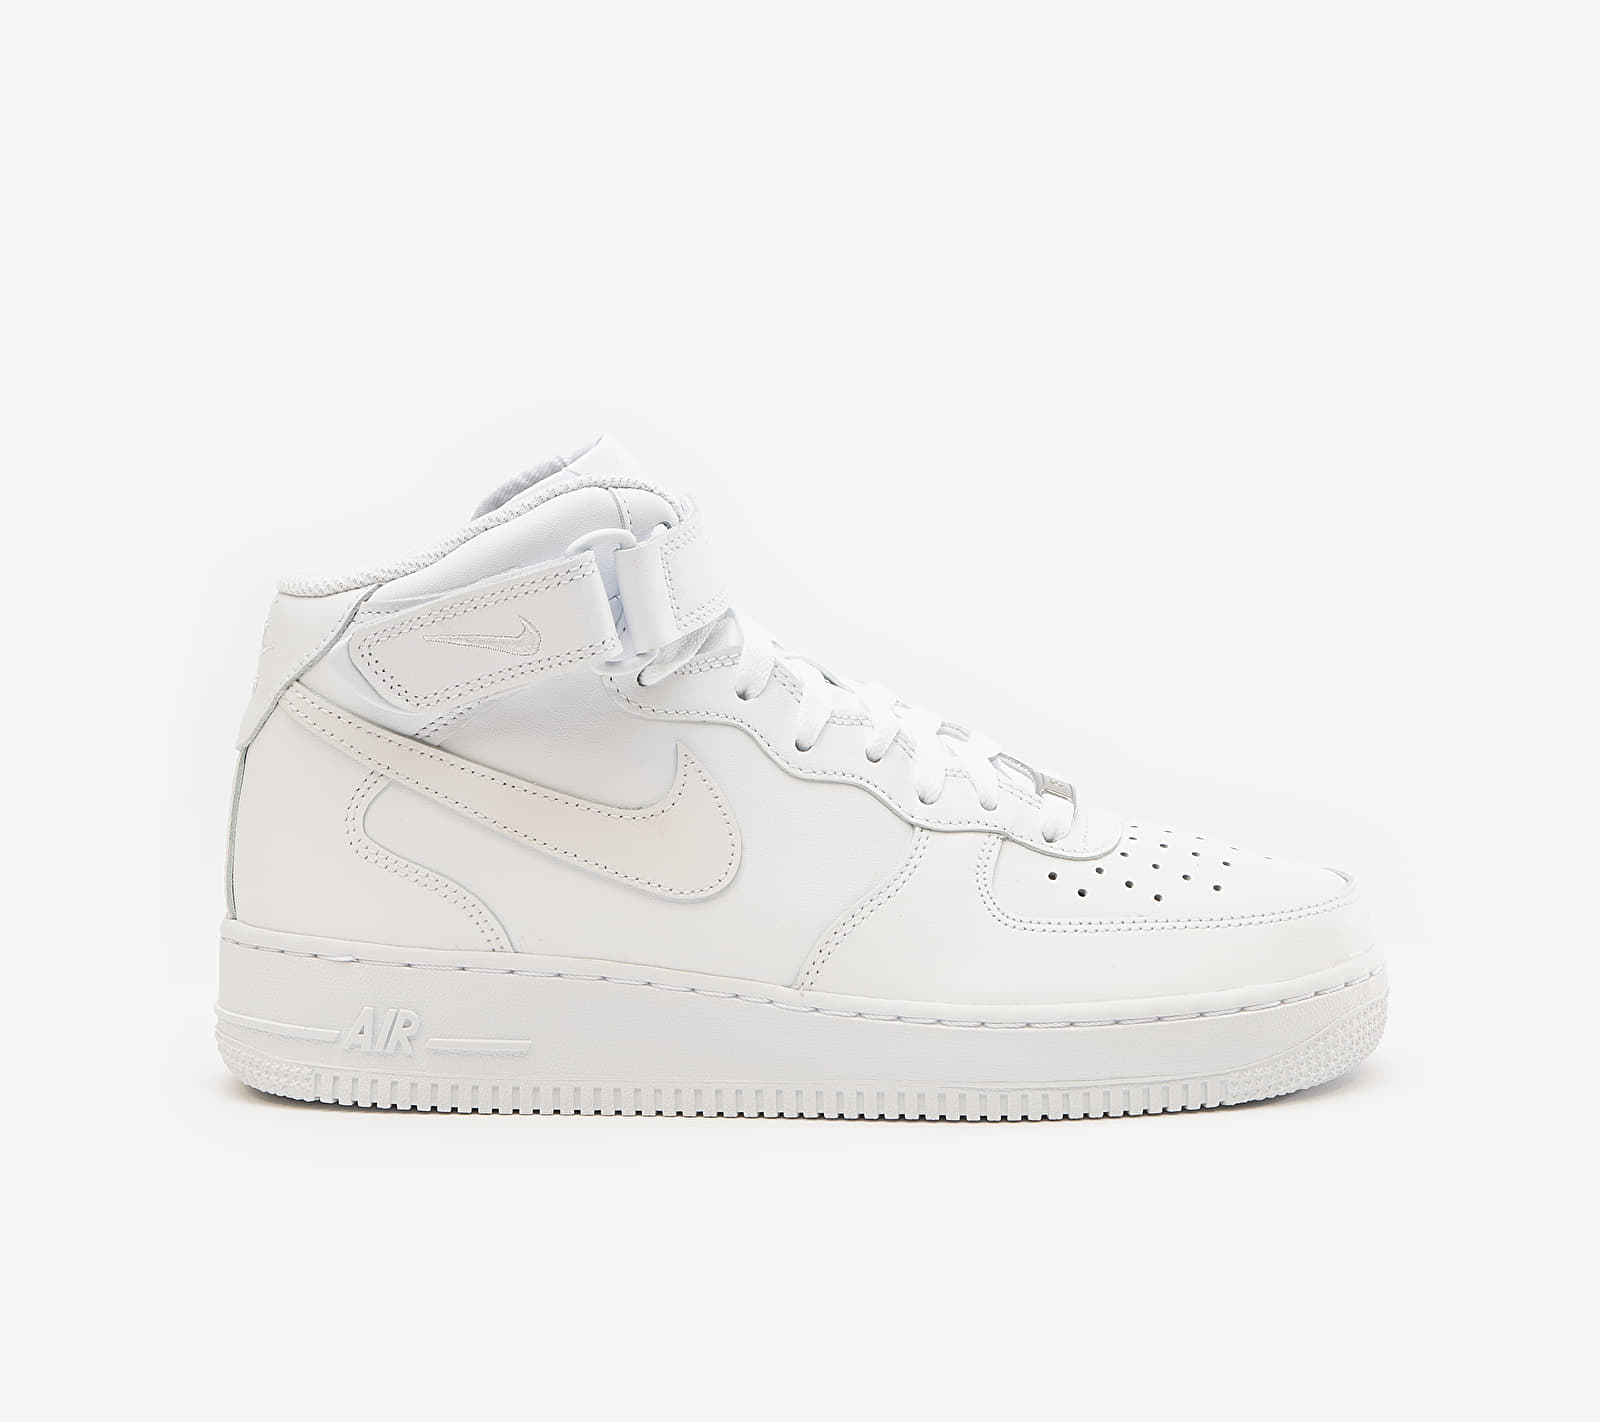 Nike Air Force 1 Mid '07 White/ White EUR 44